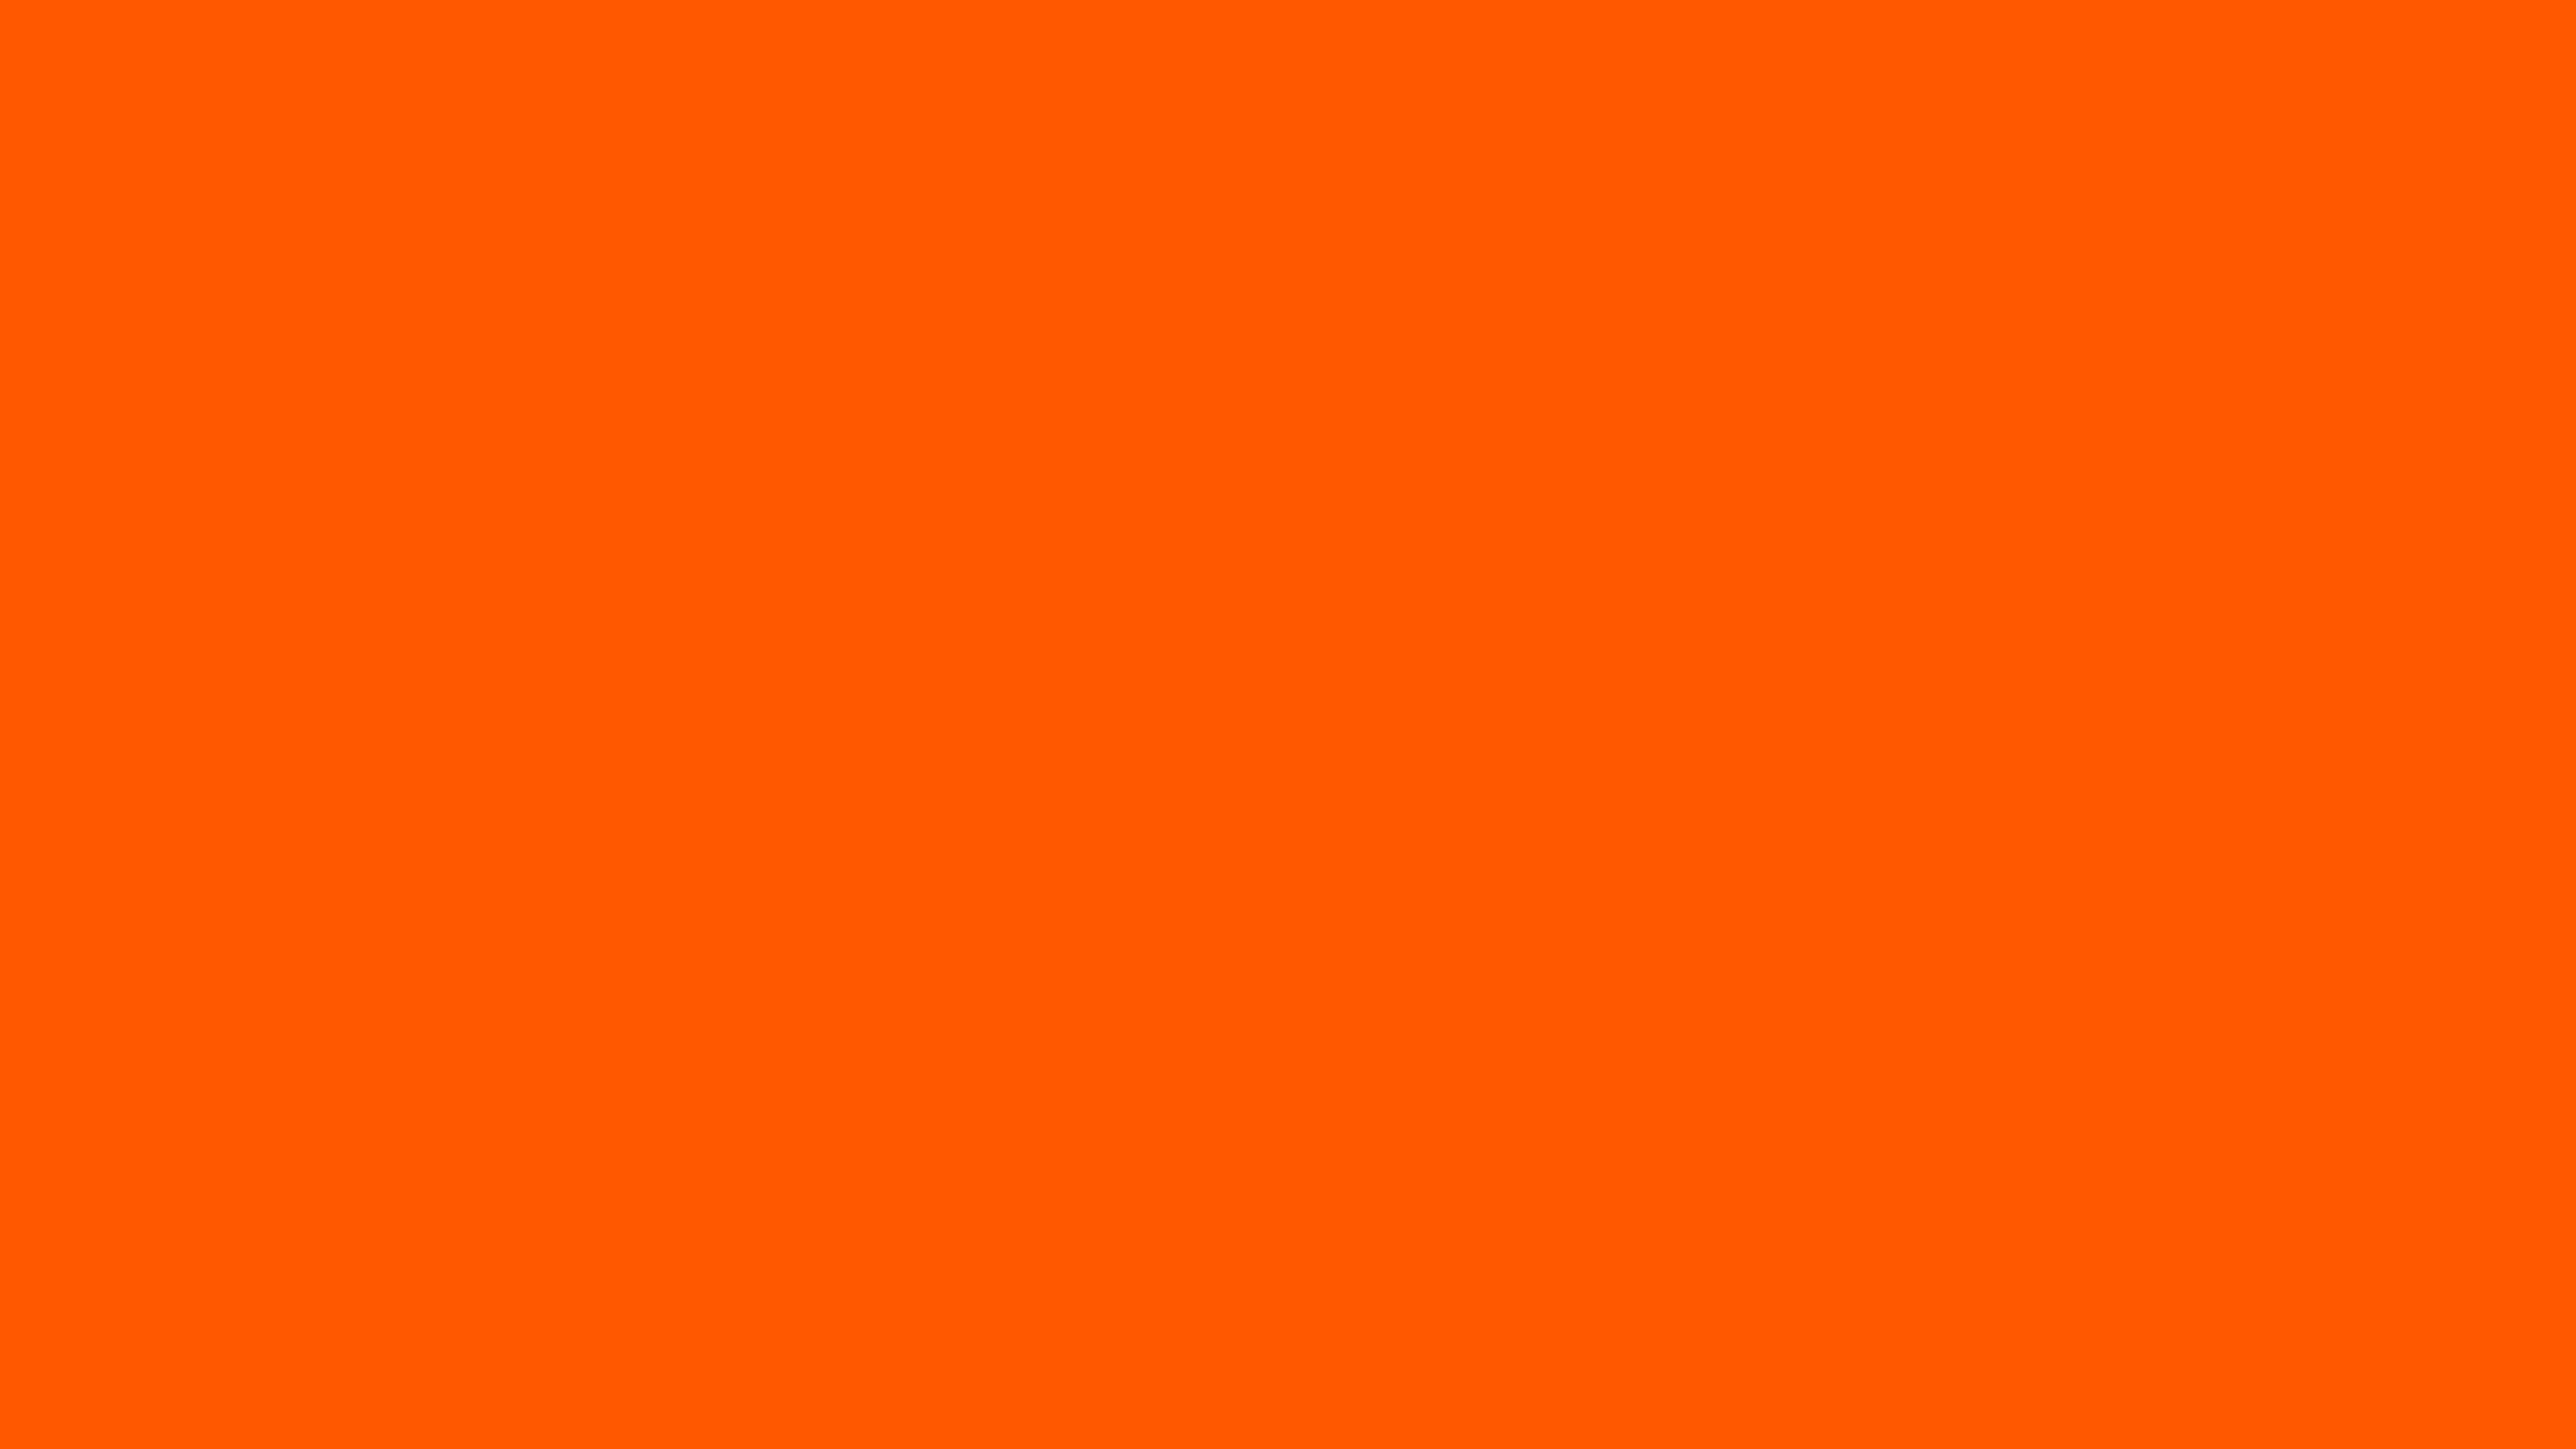 3840x2160 Orange Pantone Solid Color Background